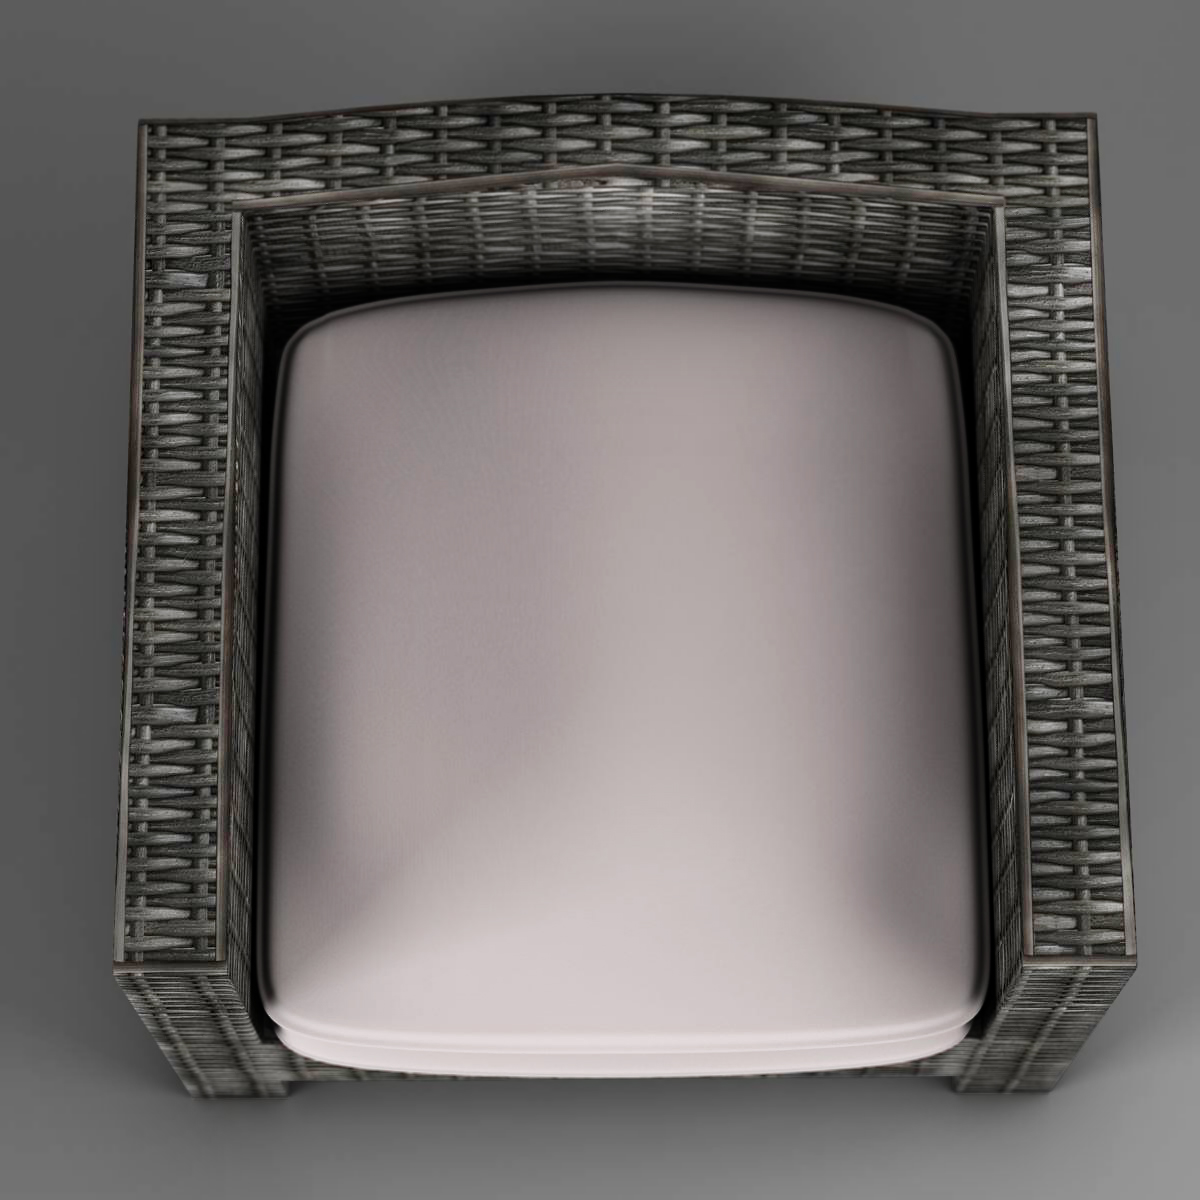 wicker couch 3d model 3ds max fbx c4d ma mb obj 162334